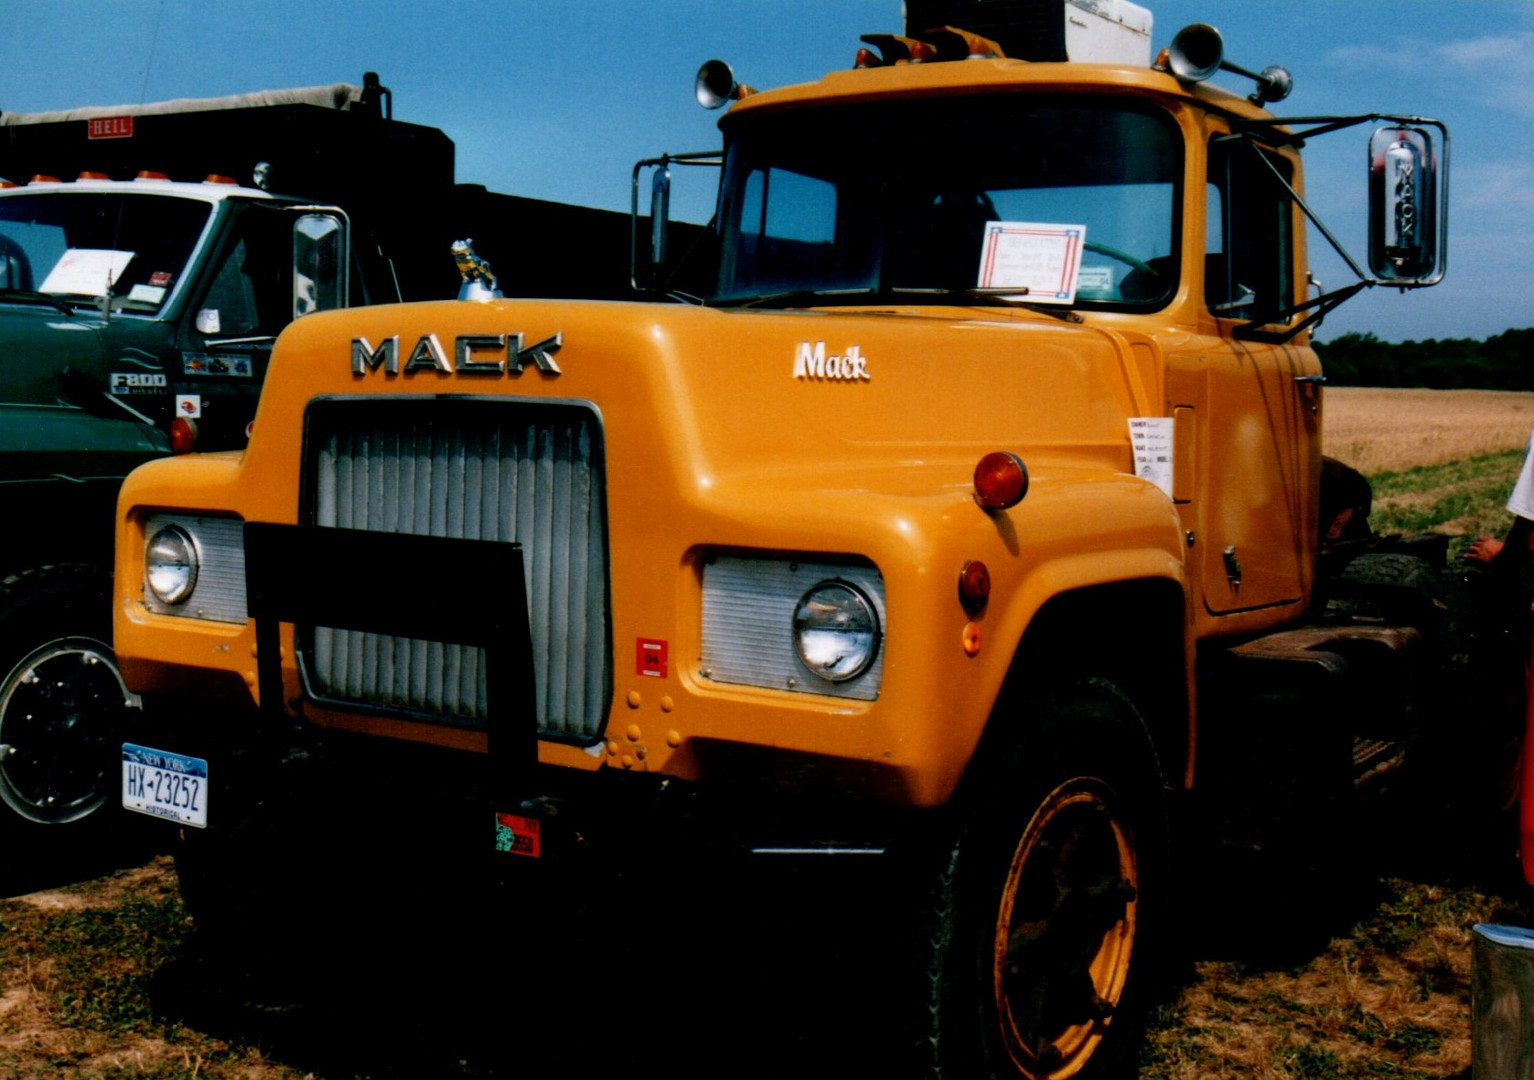 1969 Mack R-773ST tractor - Bob Connolly